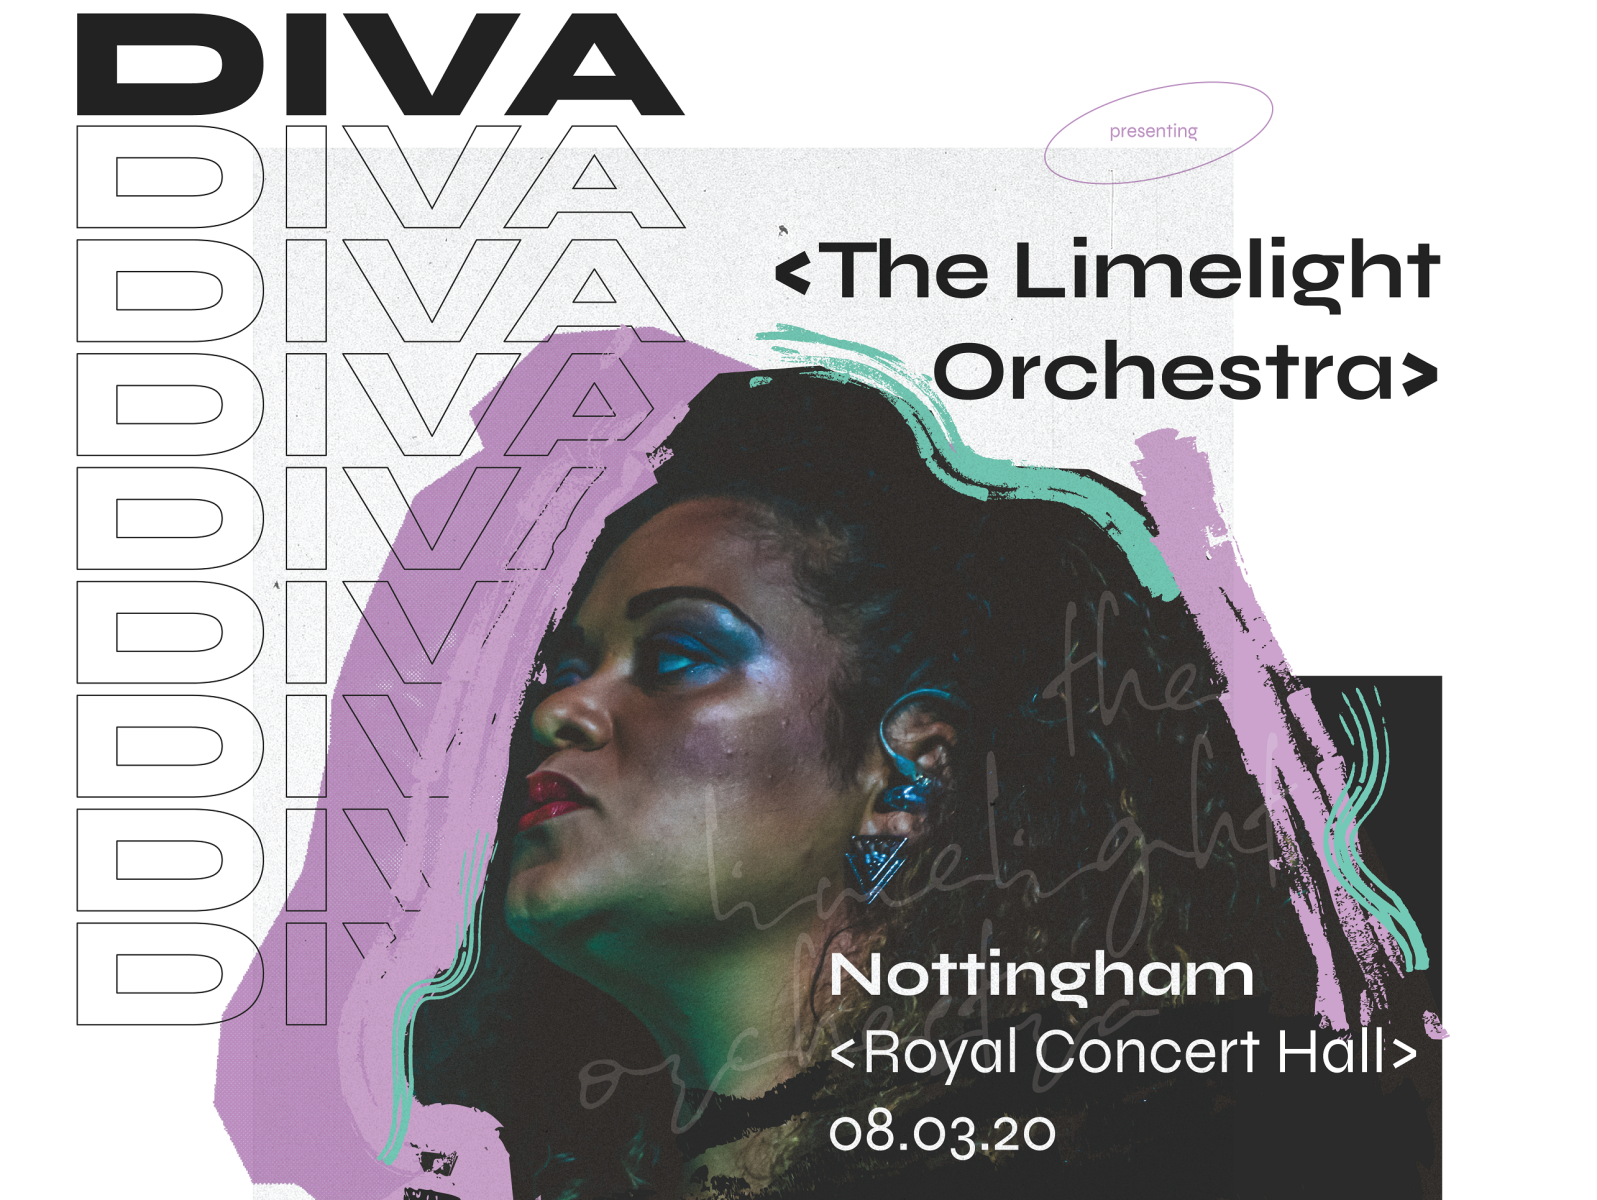 Diva: The Limelight Orchestra - Visit Nottinghamshire